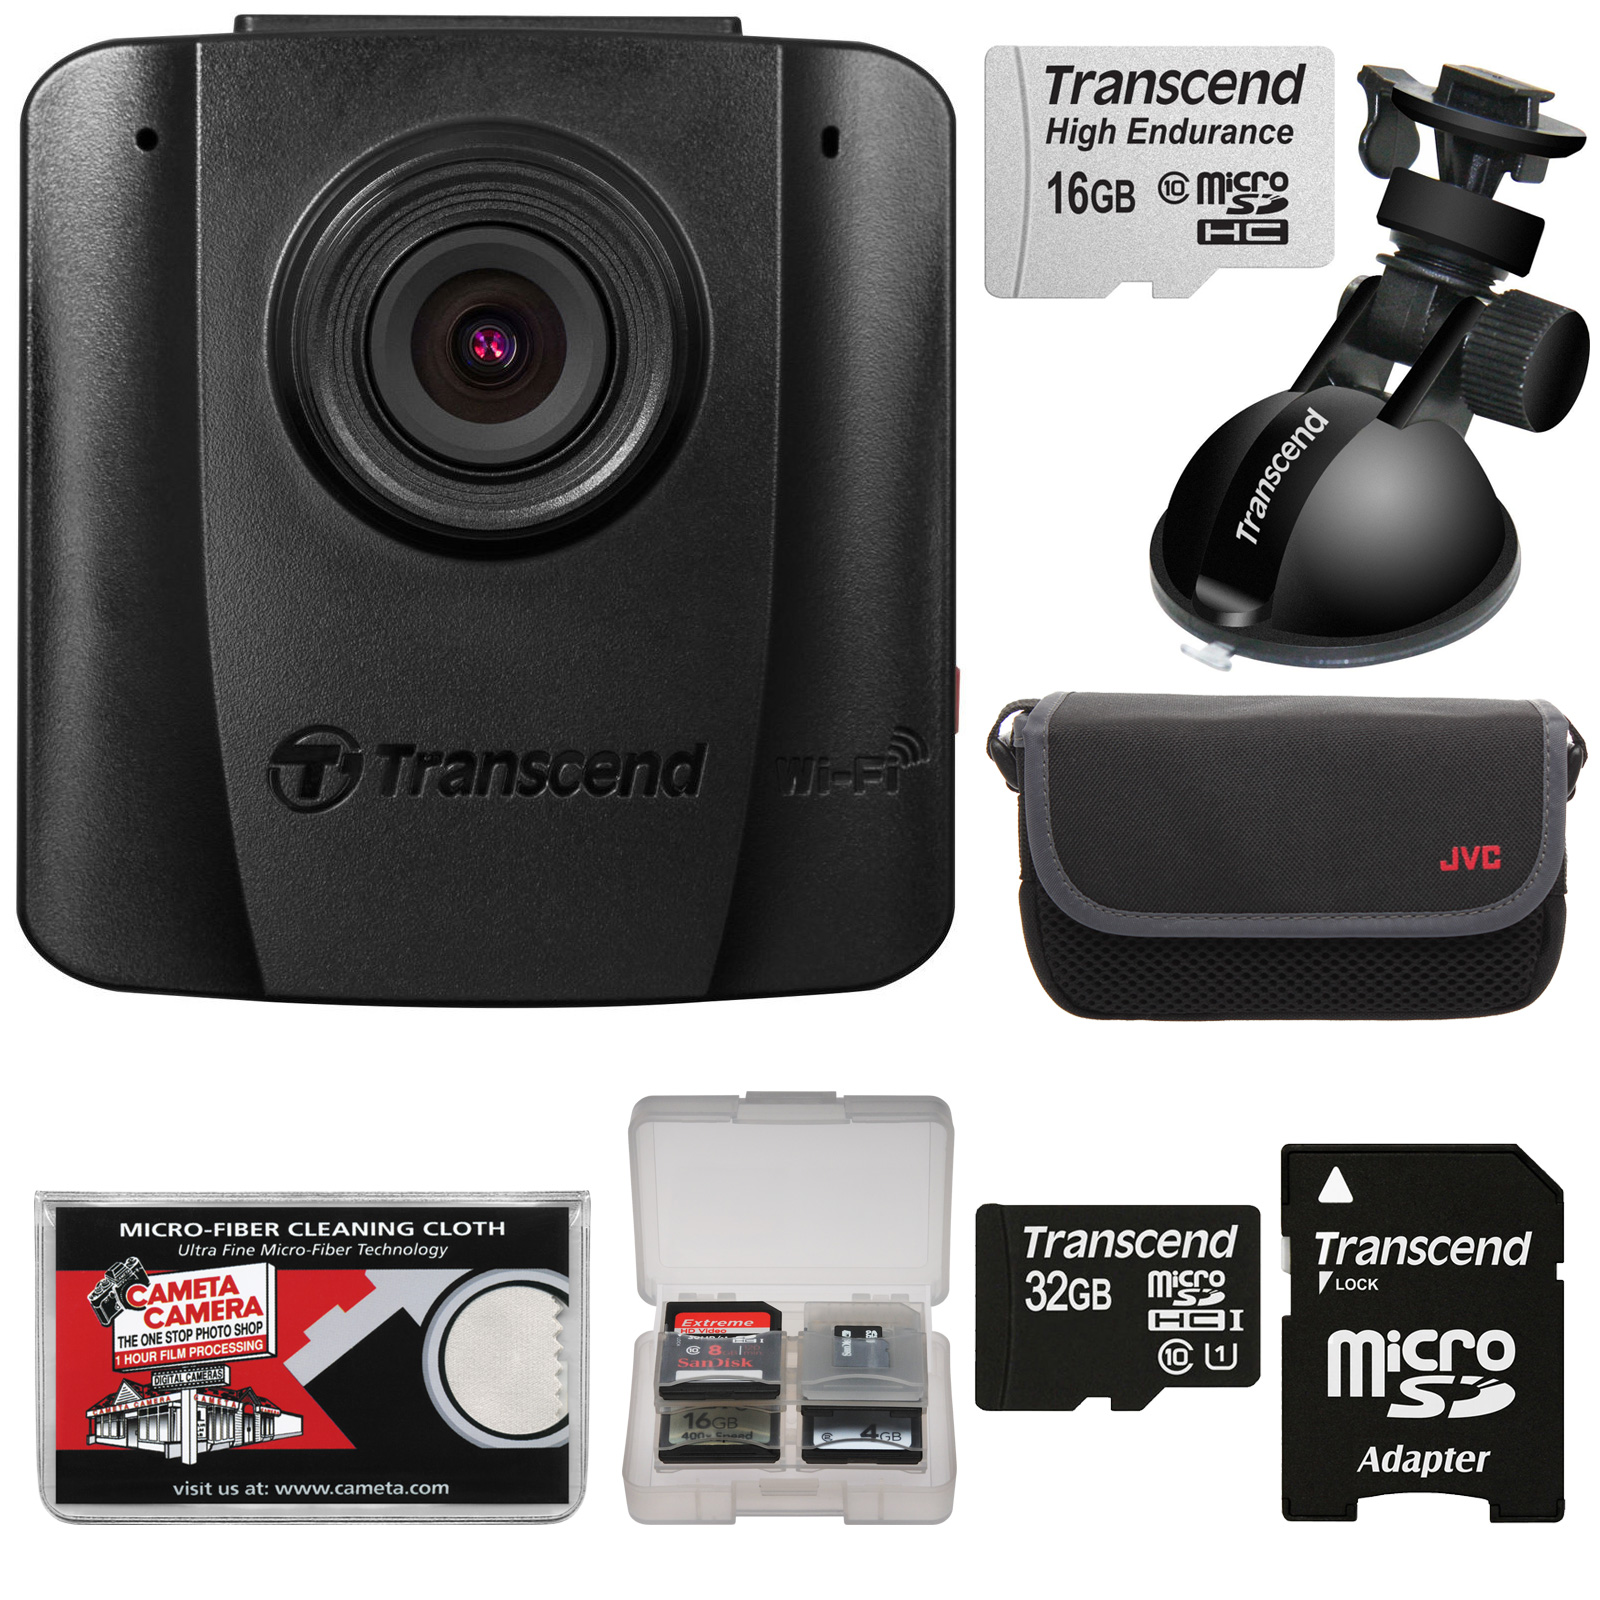 Transcend DrivePro 50 1080p HD Wi-Fi Car Dashboard Video Recorder with Suction Cup Mount + 16GB & 32GB Cards + Case + Kit